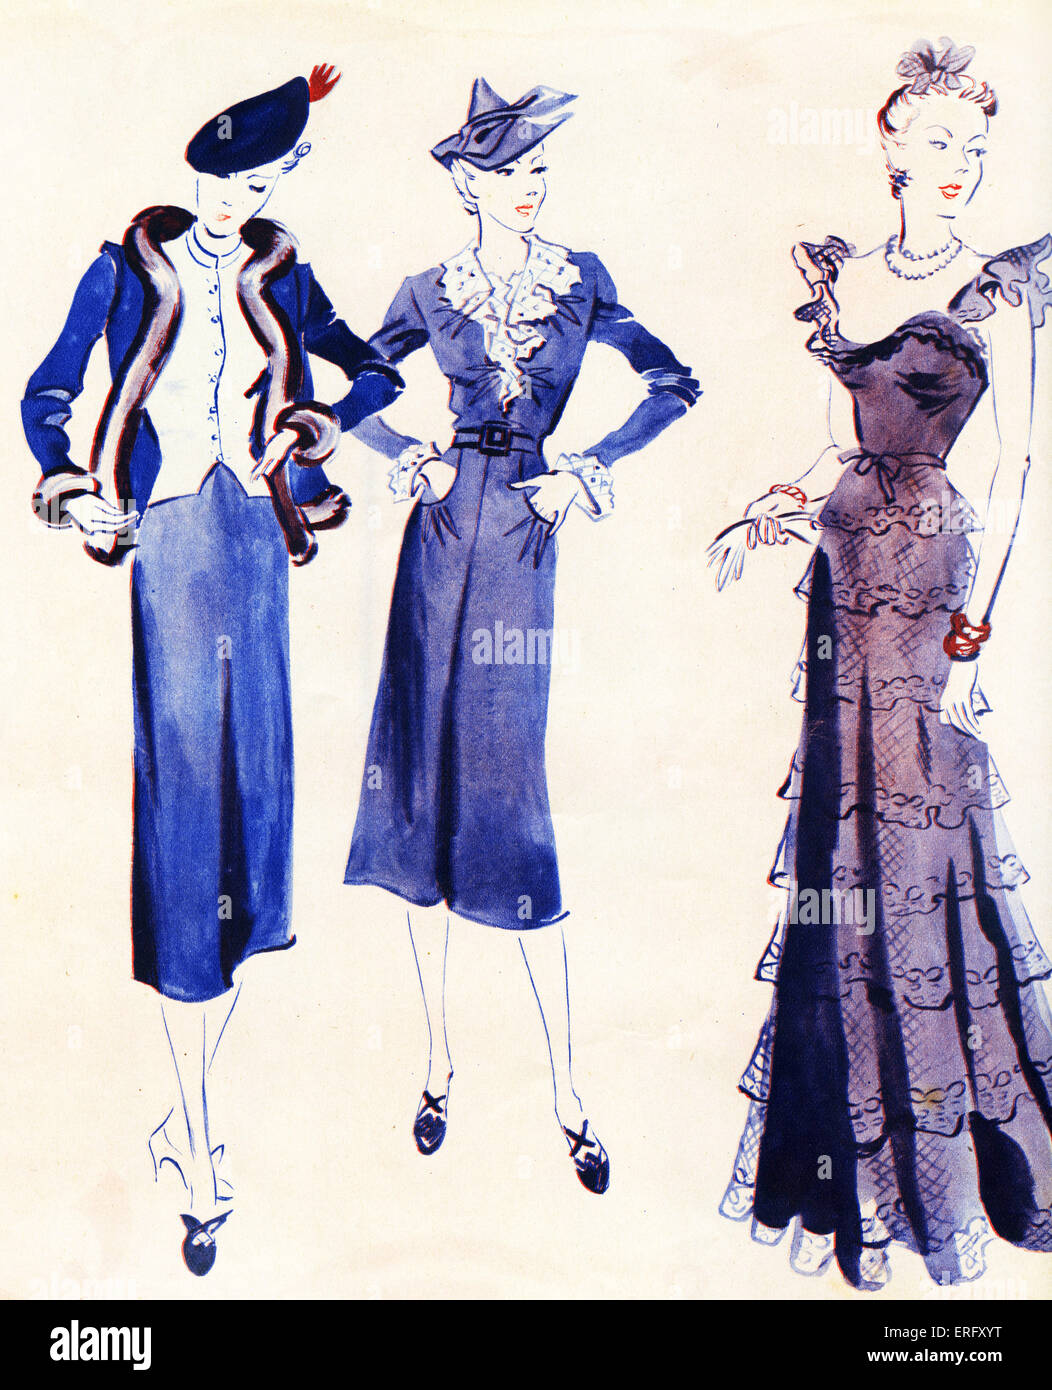 French Fashion Day And Evening Dress From Coco Chanel 39 S 1938 Autumn Stock Photo 83329004 Alamy